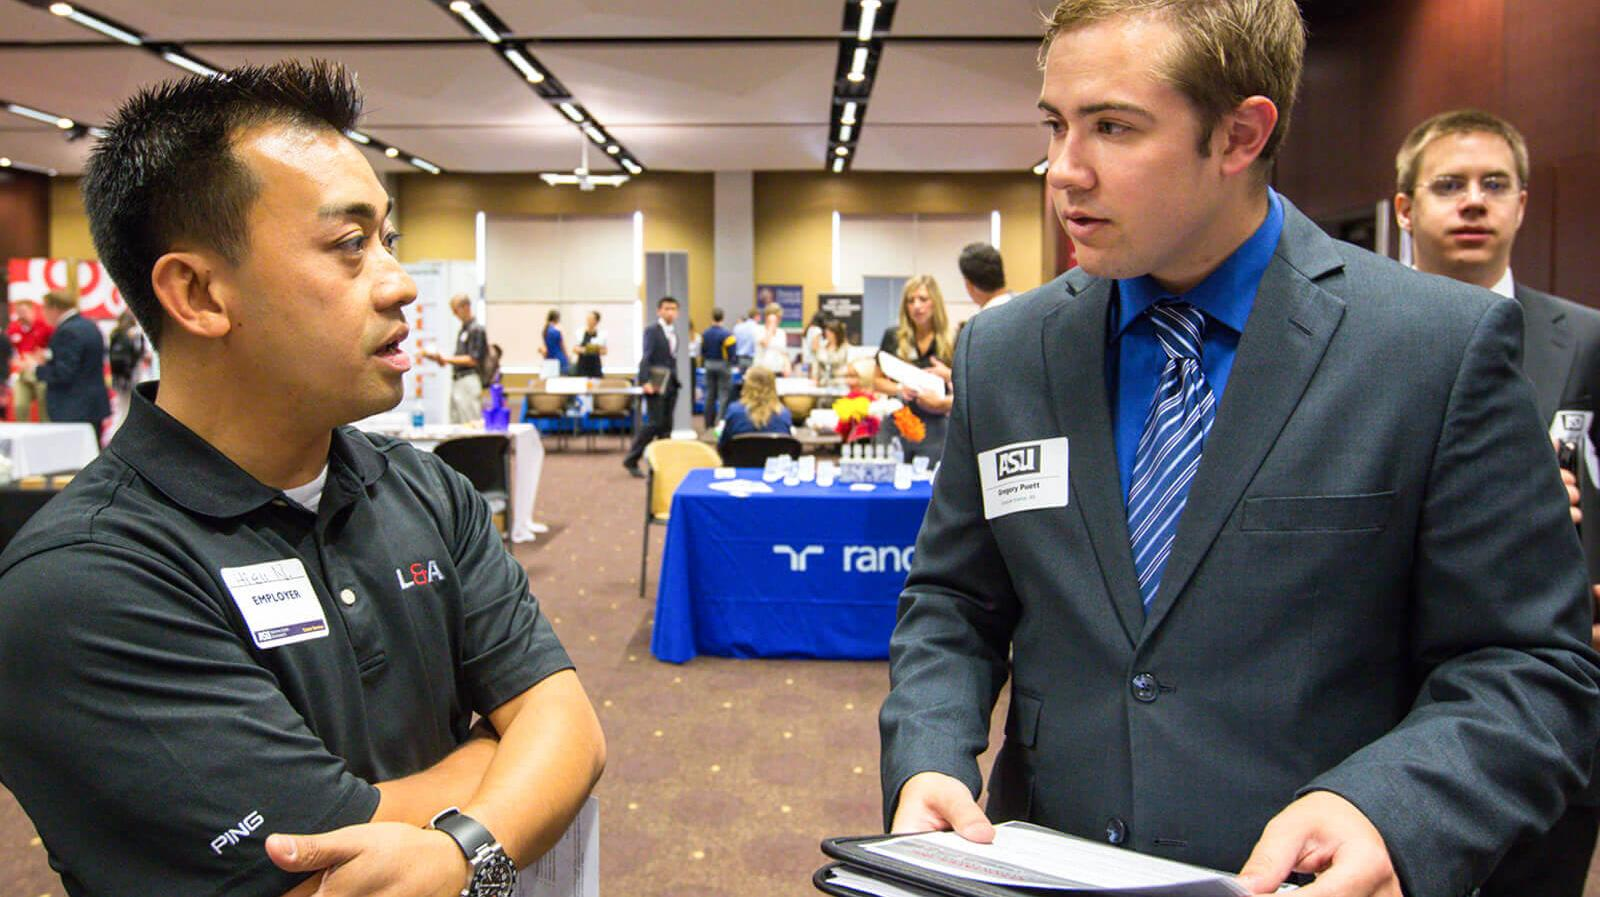 A student speaks to a recruiter at a career fair